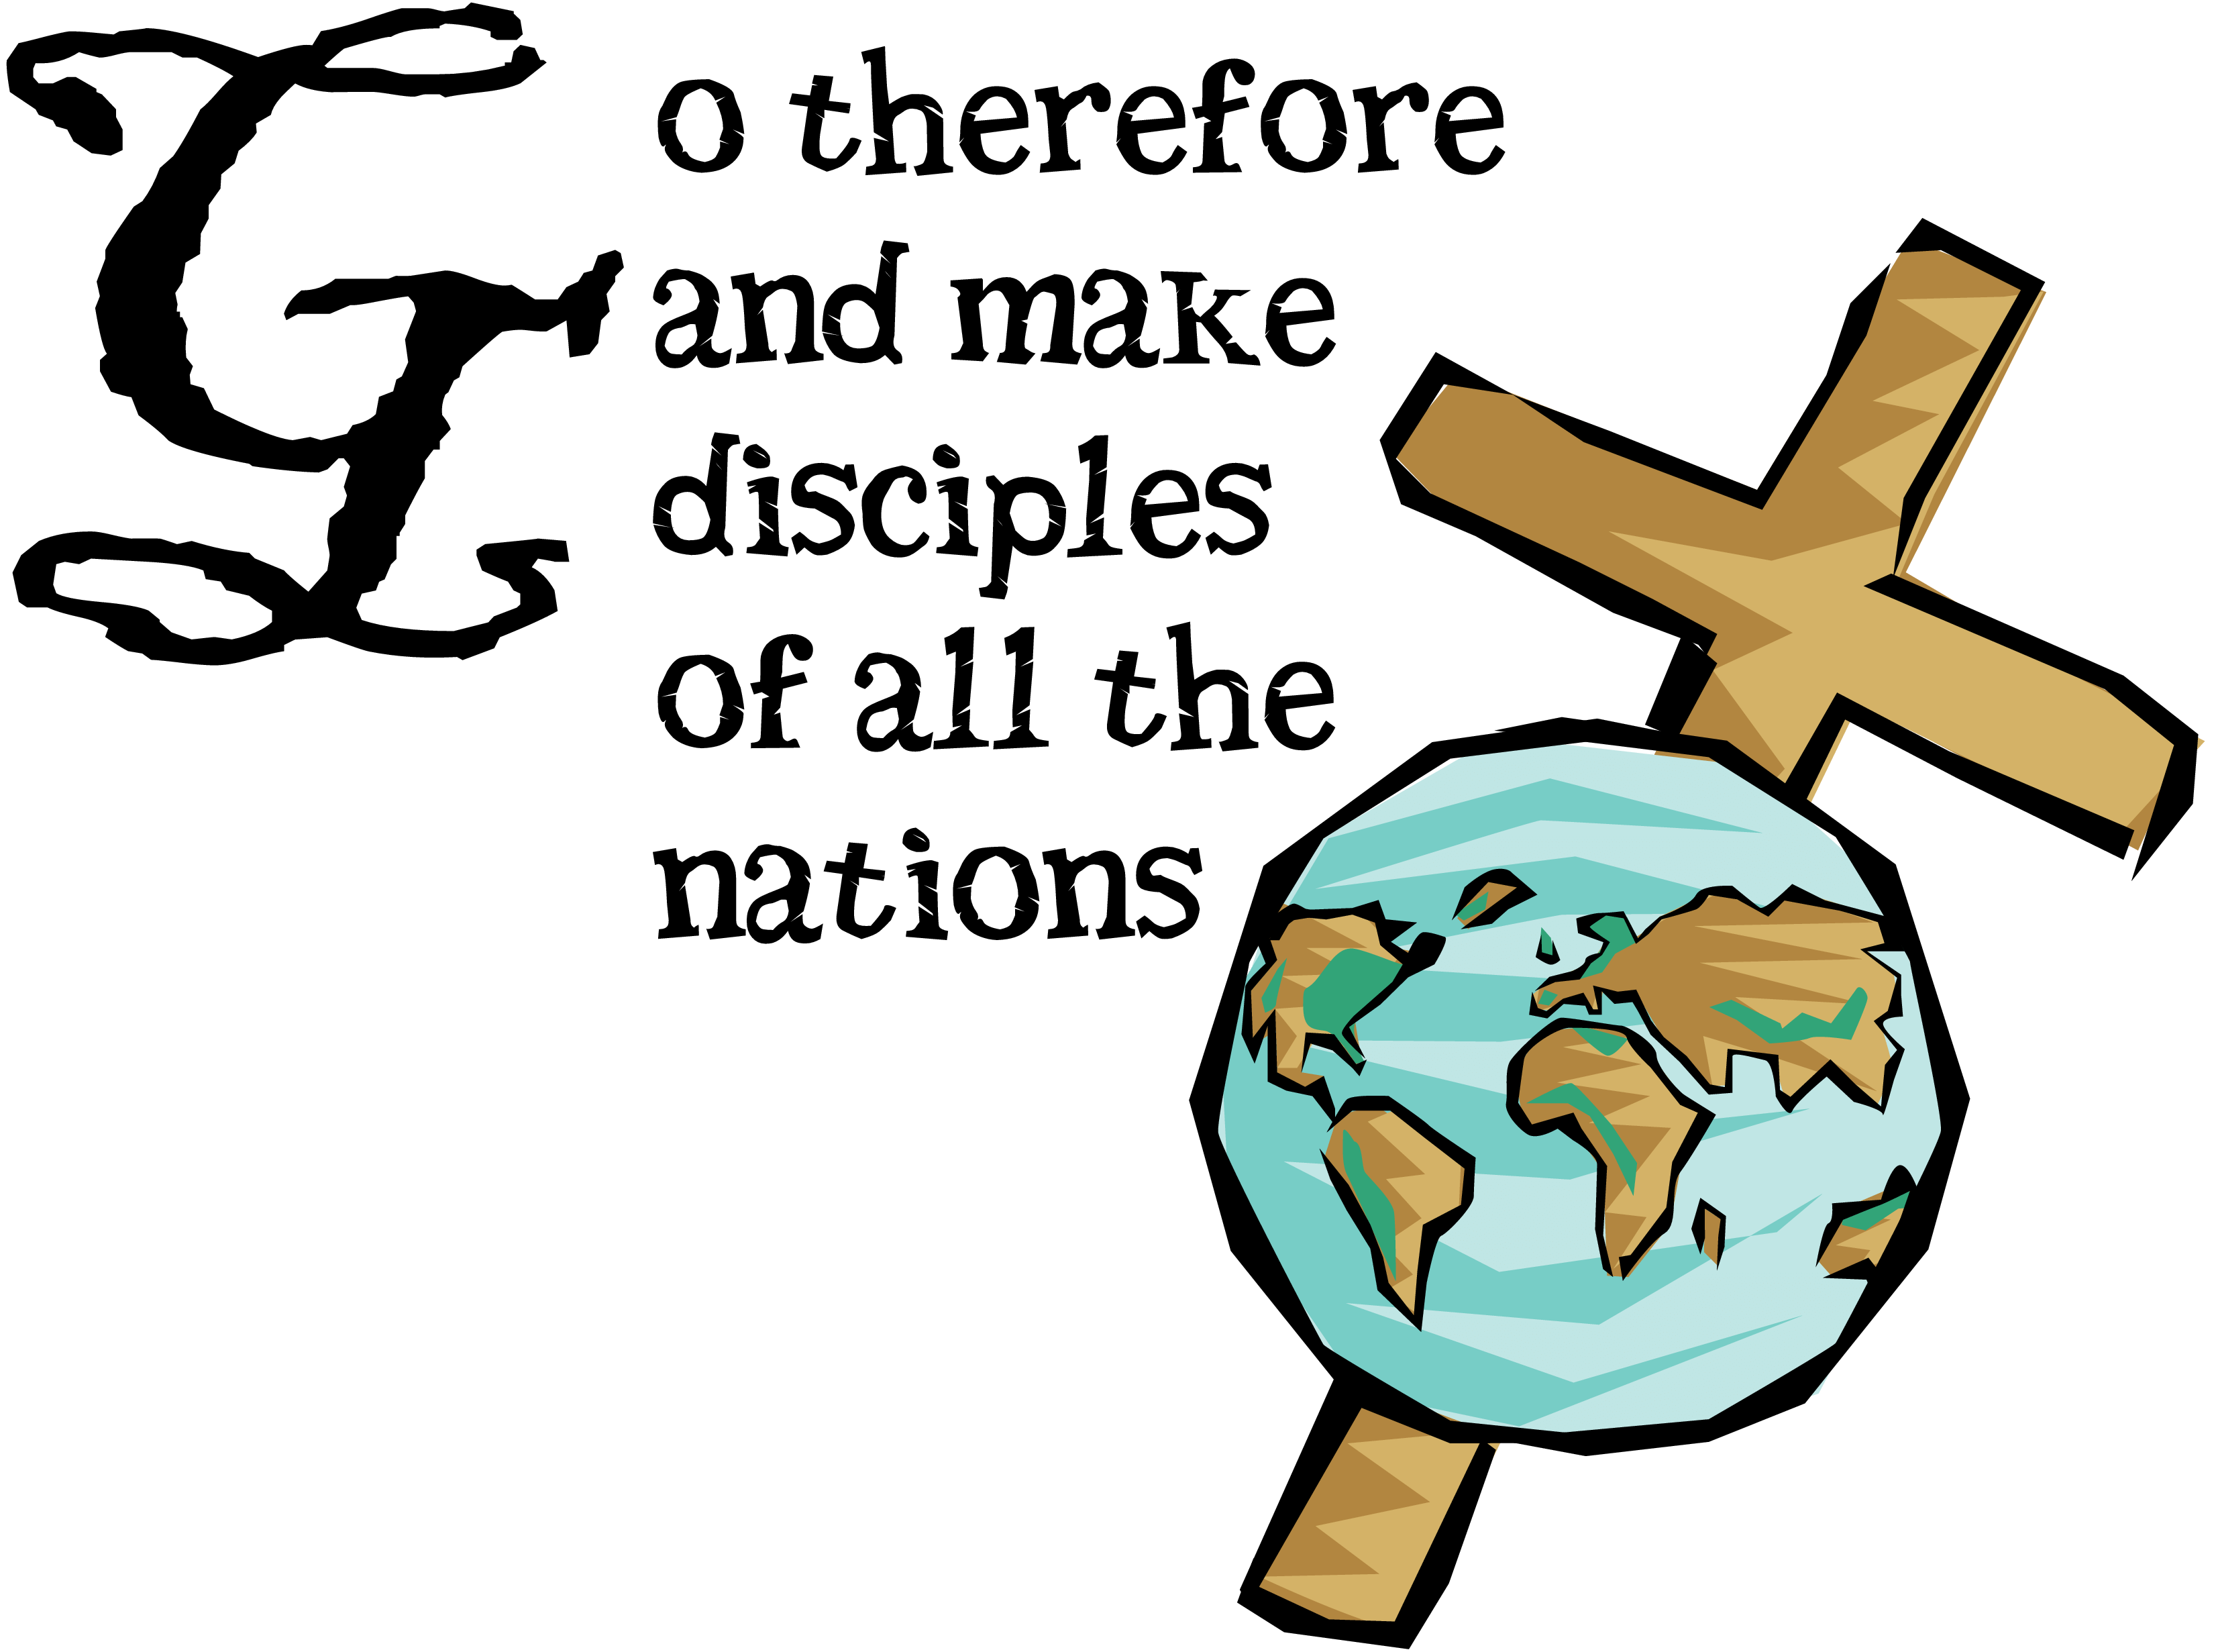 Clipart of missionaries clip art download Missionary Cliparts | Free download best Missionary Cliparts on ... clip art download